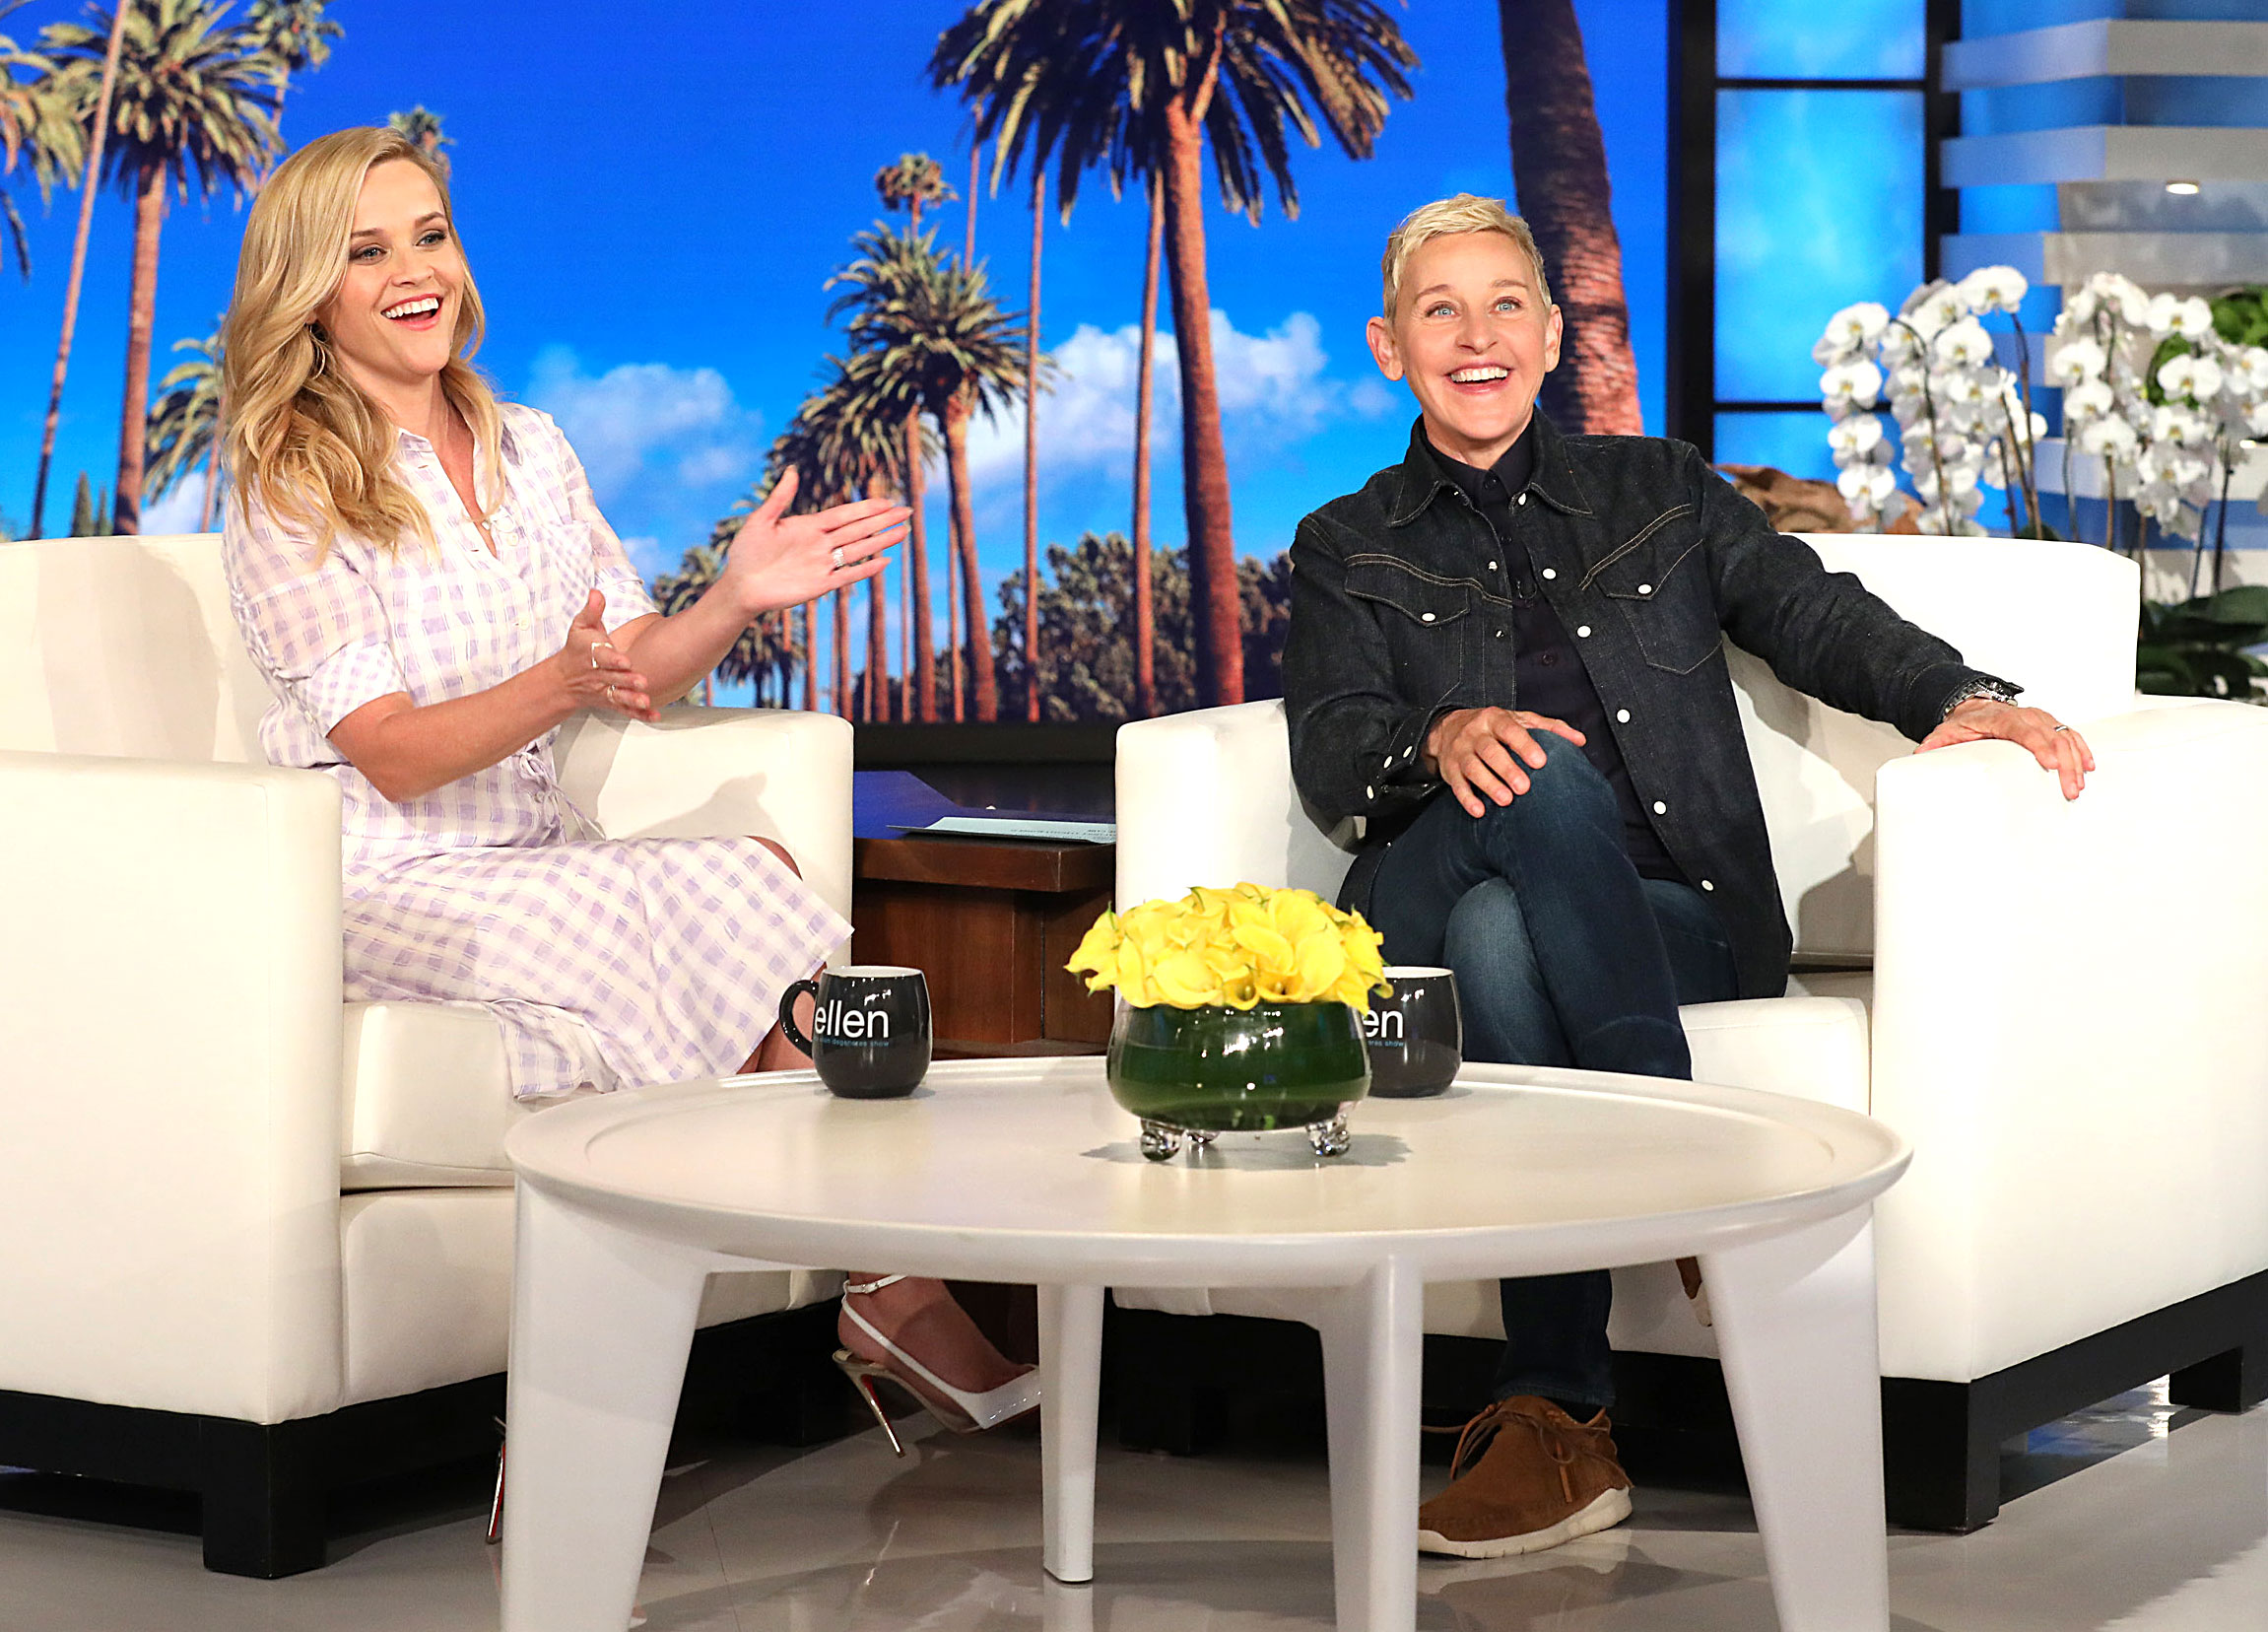 """Reese Witherspoon Legally Blonde 3 Talking About It Ellen - Reese Witherspoon appears on """"The Ellen DeGeneres Show"""" at the Warner Bros. lot in Burbank, California."""